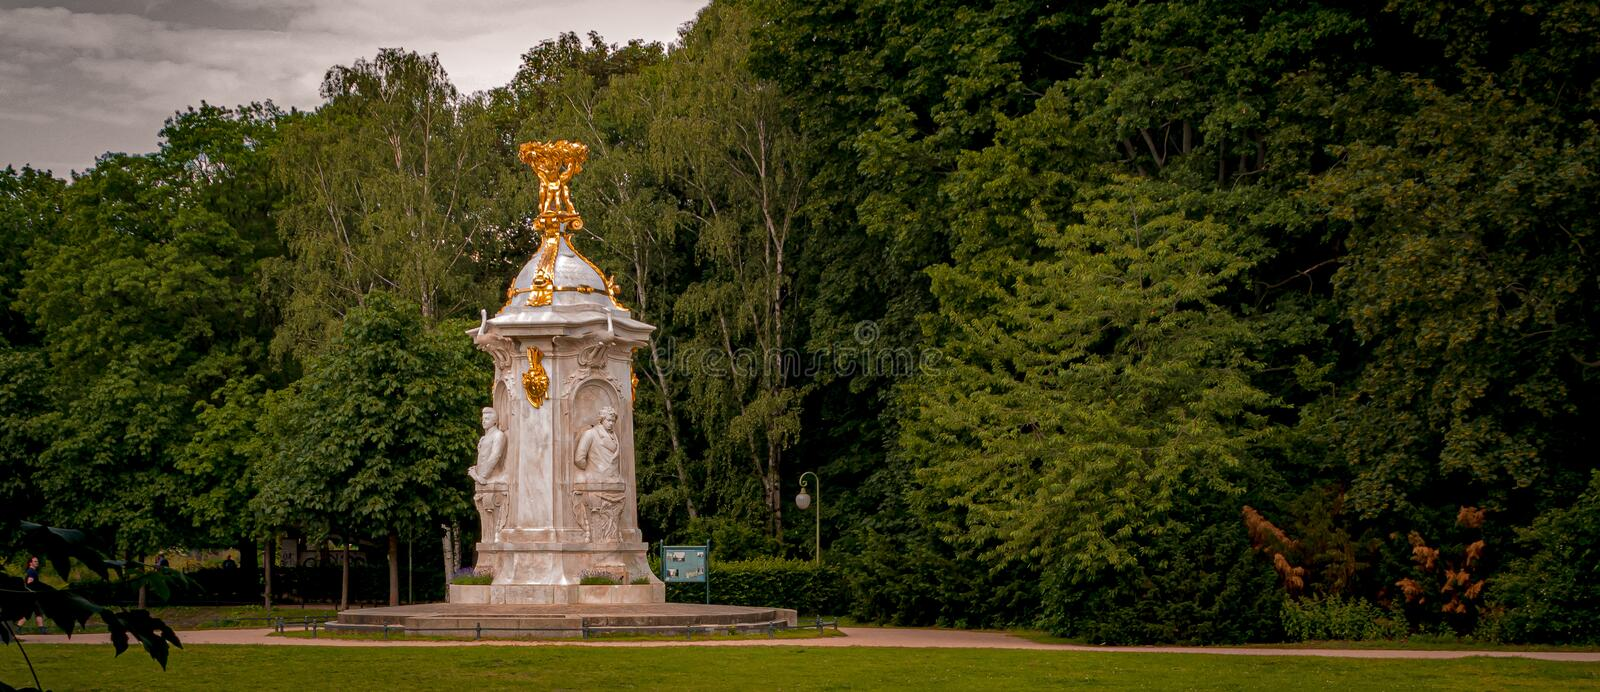 Beethoven-Haydn-Mozart Monument in Tiergarten park in Berlin, Germany. A Beethoven-Haydn-Mozart Monument in Tiergarten park in Berlin, Germany stock image